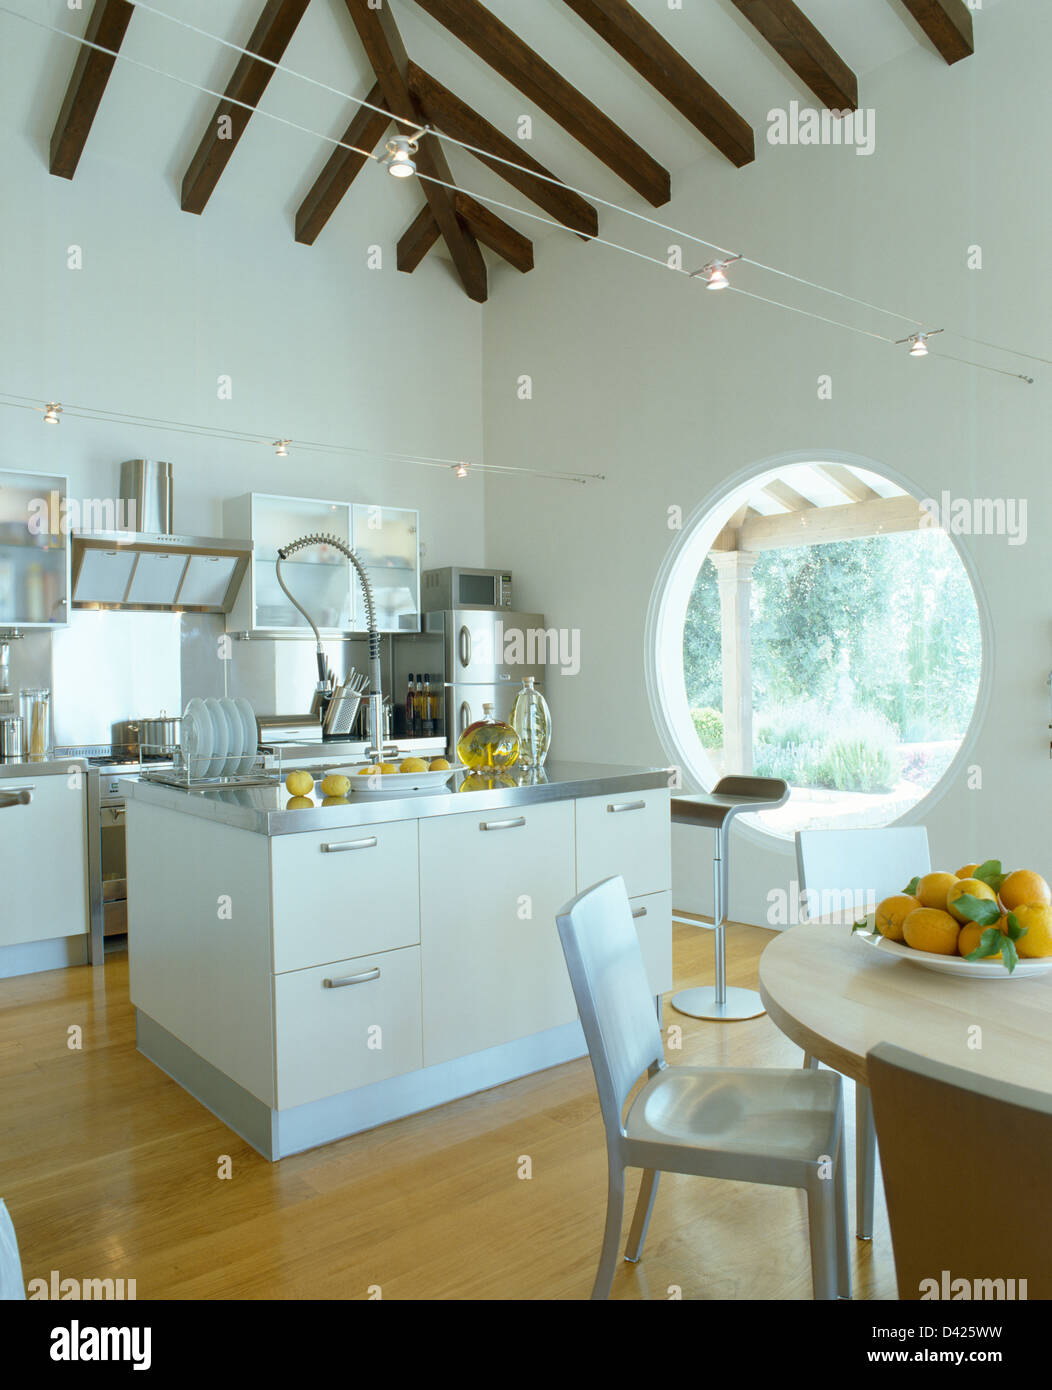 Island Unit In Modern White Mediterranean Kitchen Dining Room With Large Circular Window And Wooden Flooring